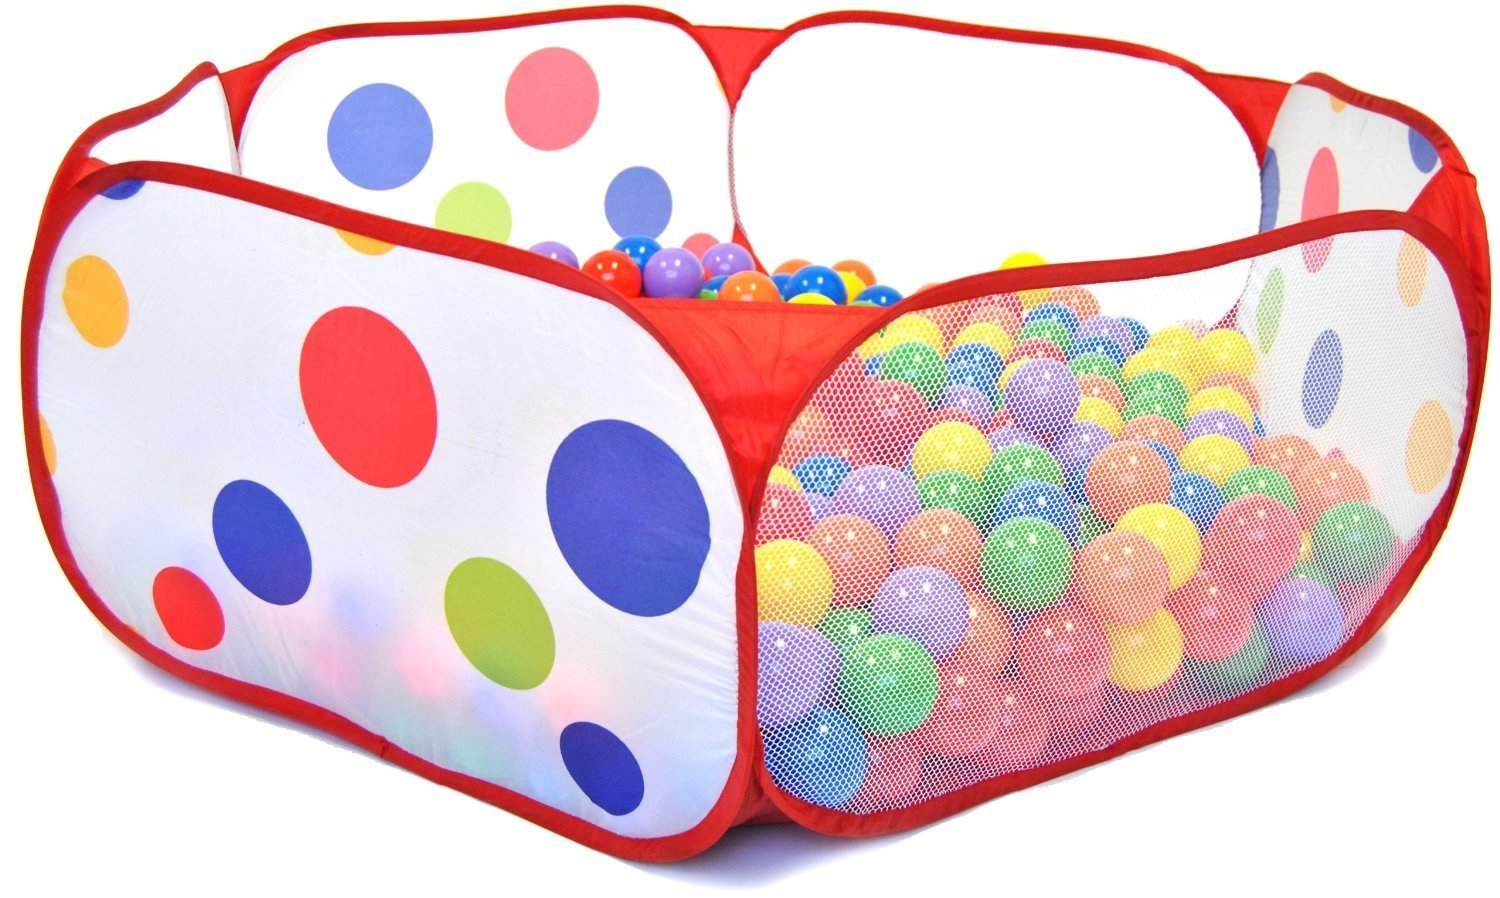 Hexagon Baby Pen Ball Pit Fun Proprioception The Sensory Spectrum